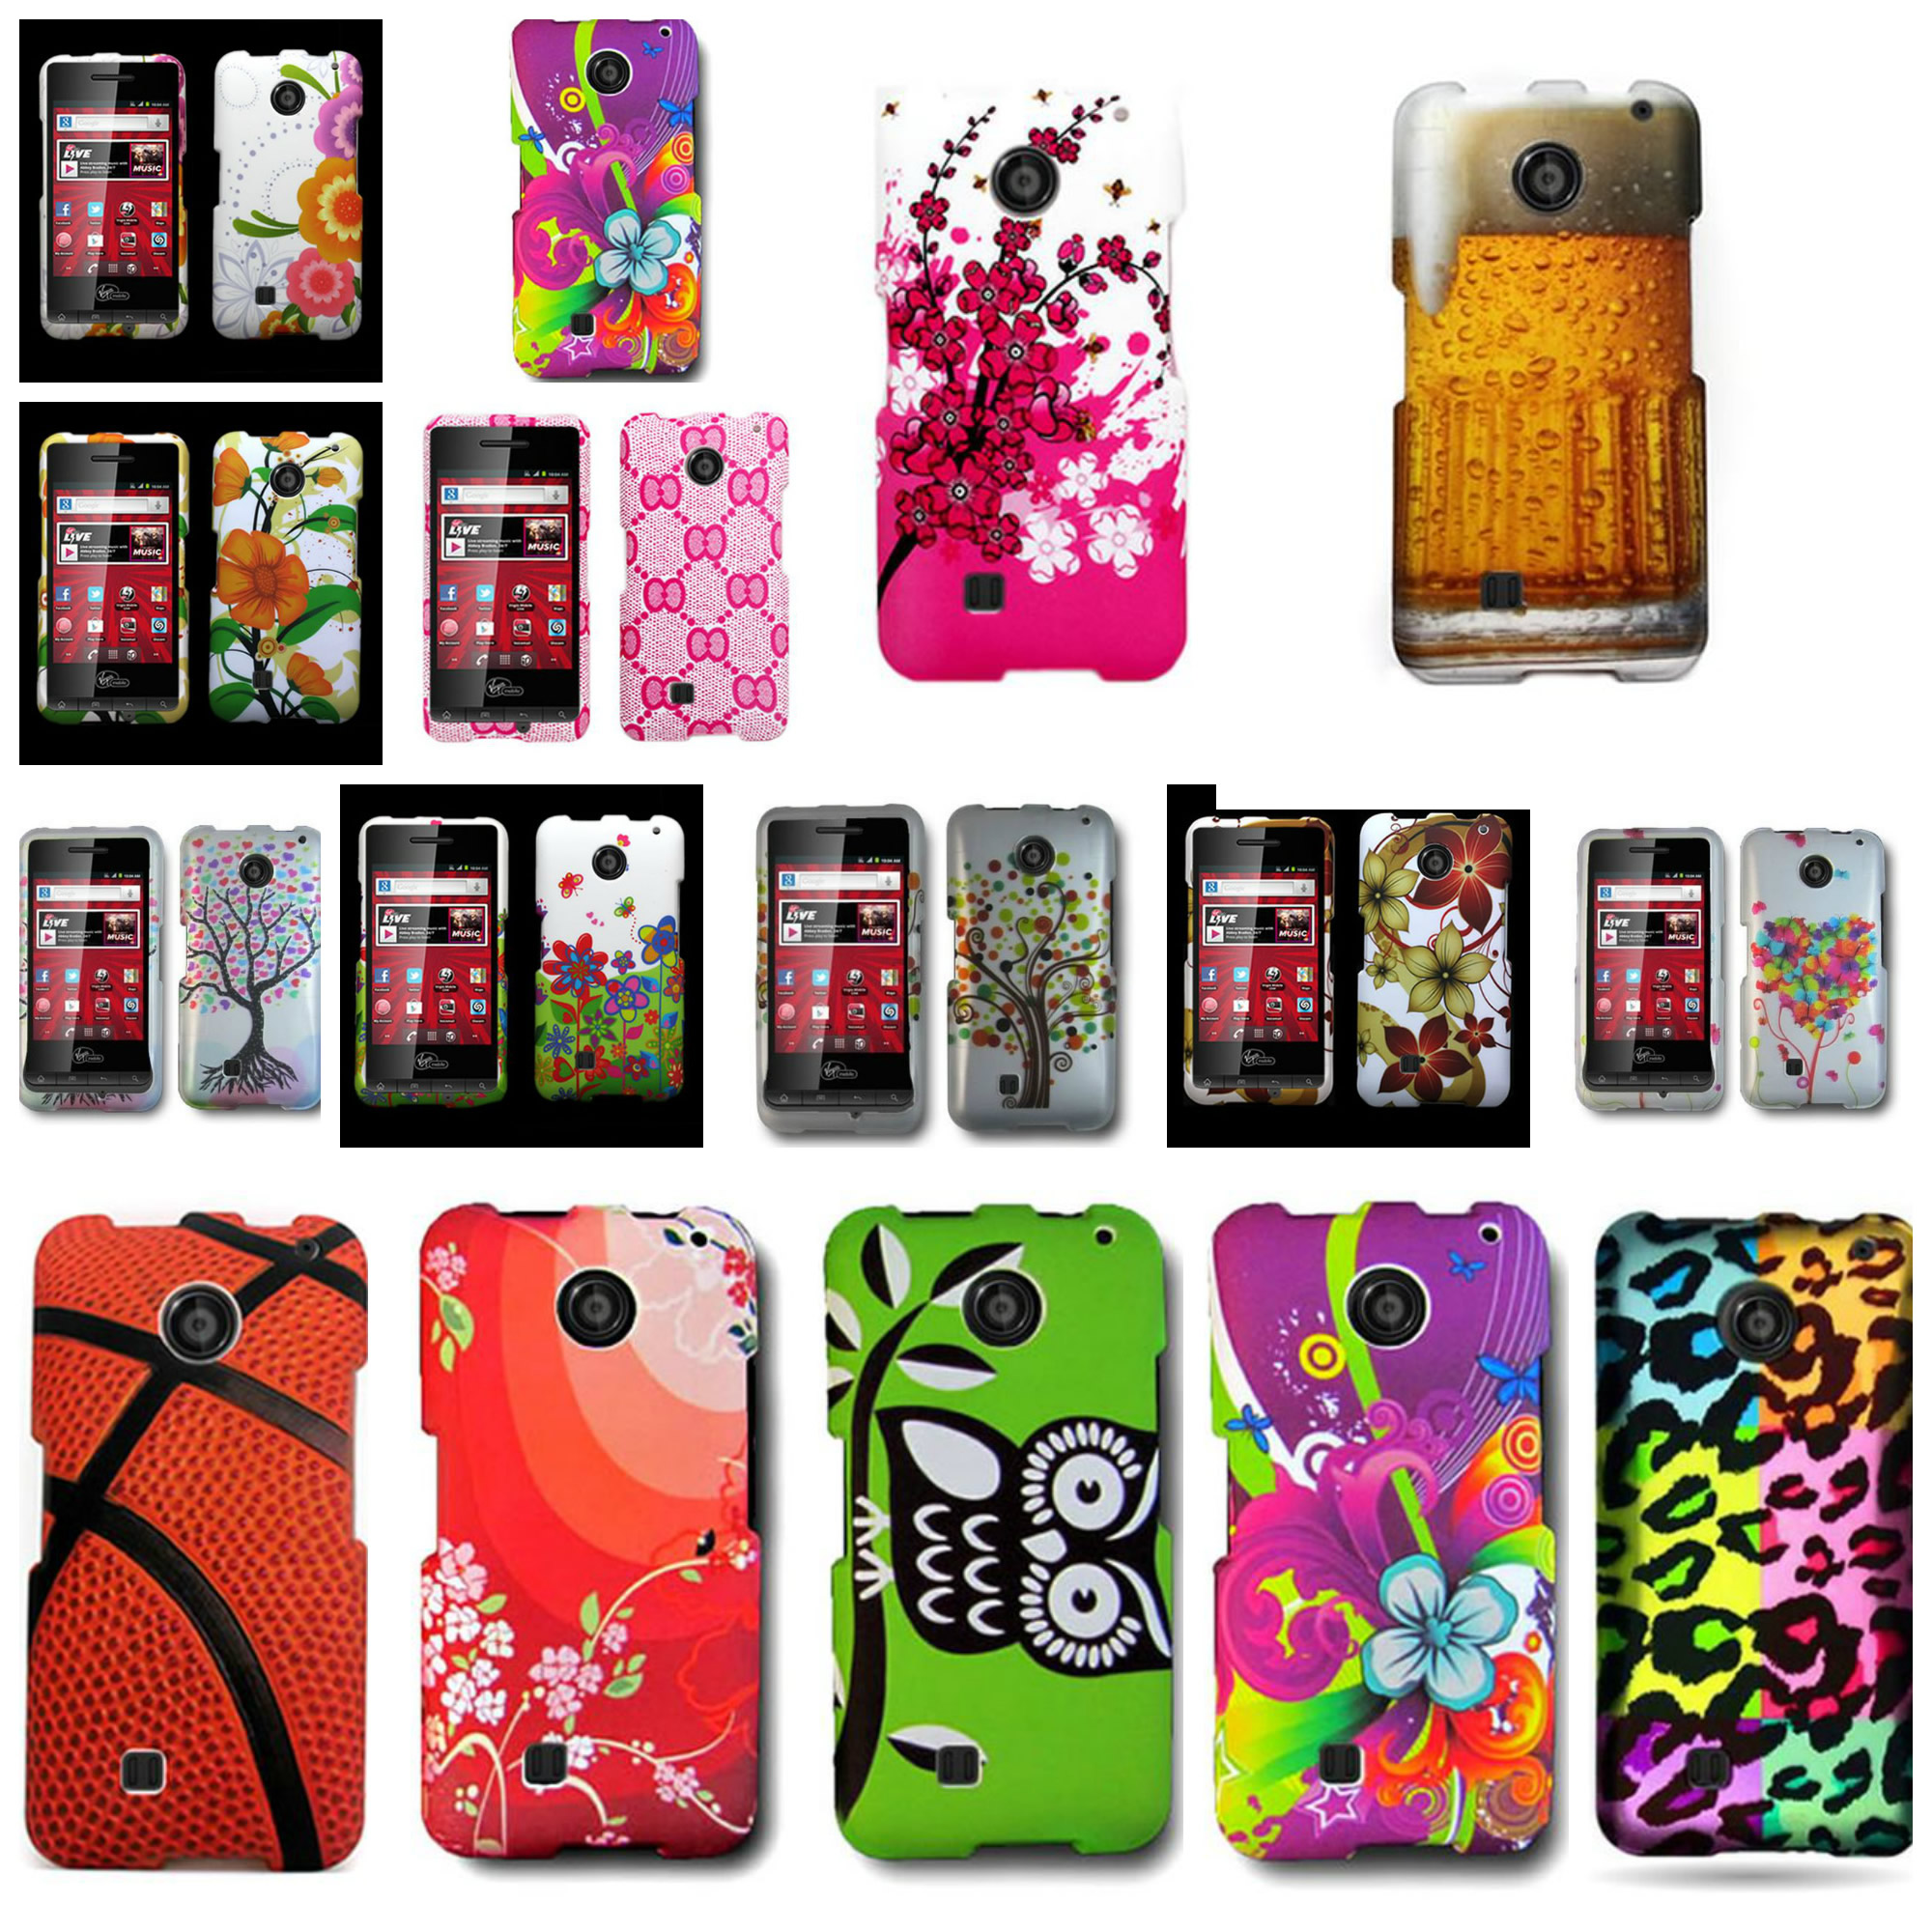 virgin mobile case virgin mobile usa is a brand extension of virgin, a uk-based company founded by sir richard branson the company led by ceo dan schulman was founded under virgin's mission statement which stated we believe in making a difference.